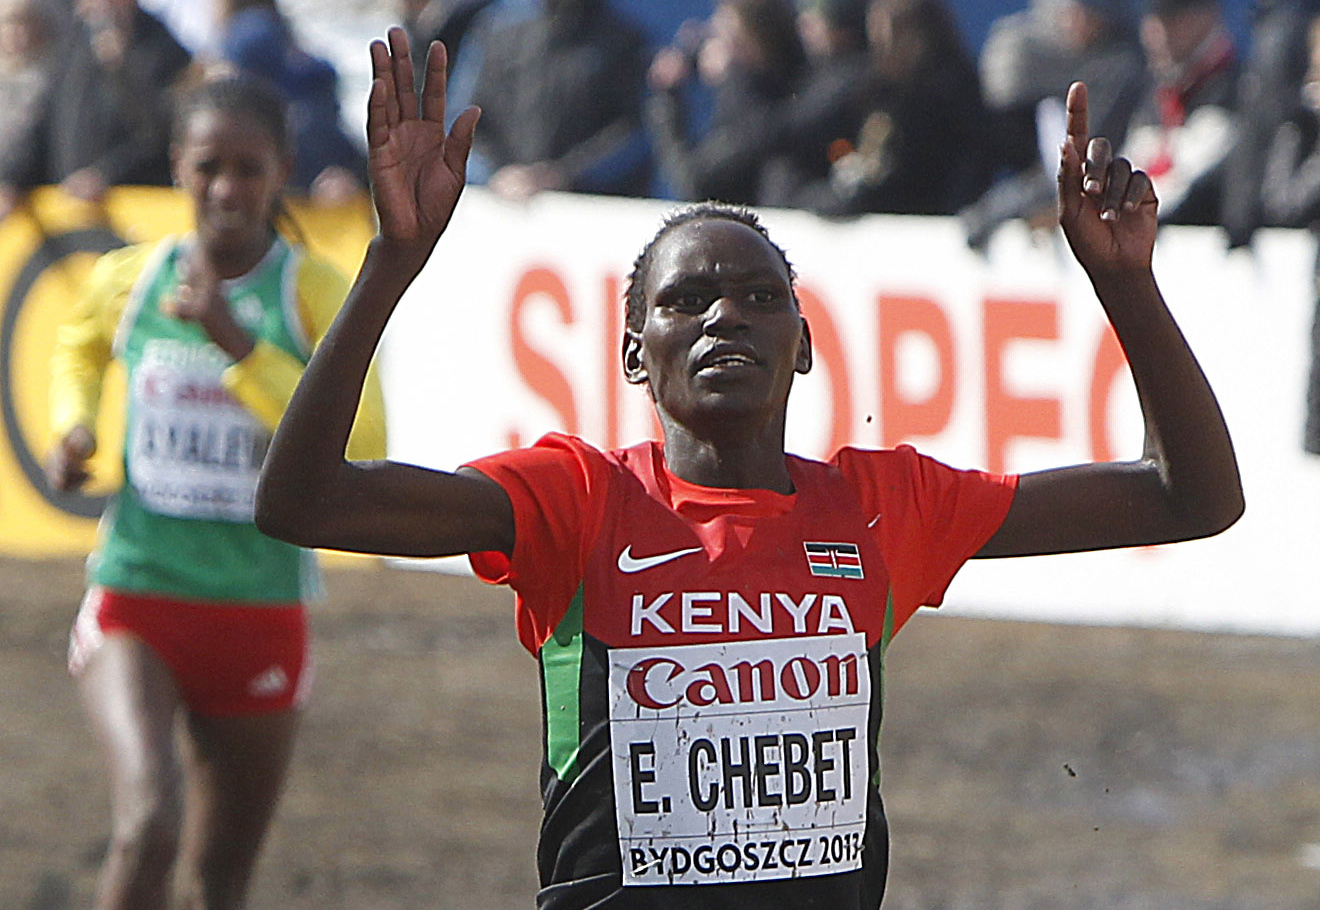 FILE - In this March 24 , 2013 file photo, Kenya's Emily Chebet crosses the finish line of the women's race at the Cross Country World Championships in Bydgoszcz, Poland. Never before have Kenyas fabulously successful runners gone to the Olympics in such